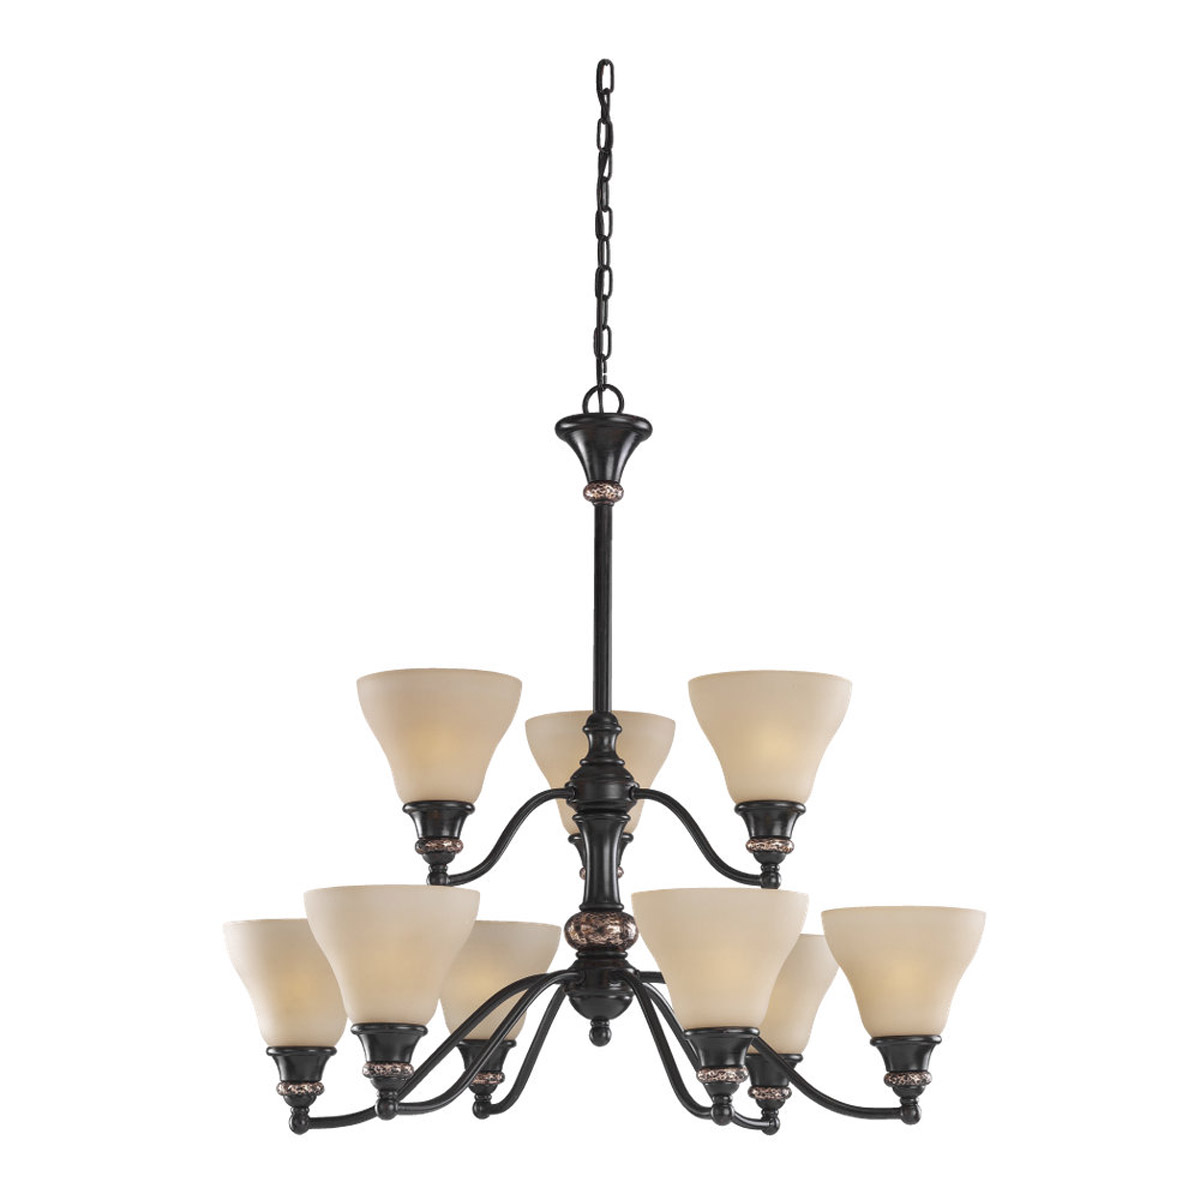 Sea Gull Lighting Brixham 9 Light Chandelier in Rustic Bronze with Hammered Copper Inlay 31593-844 photo